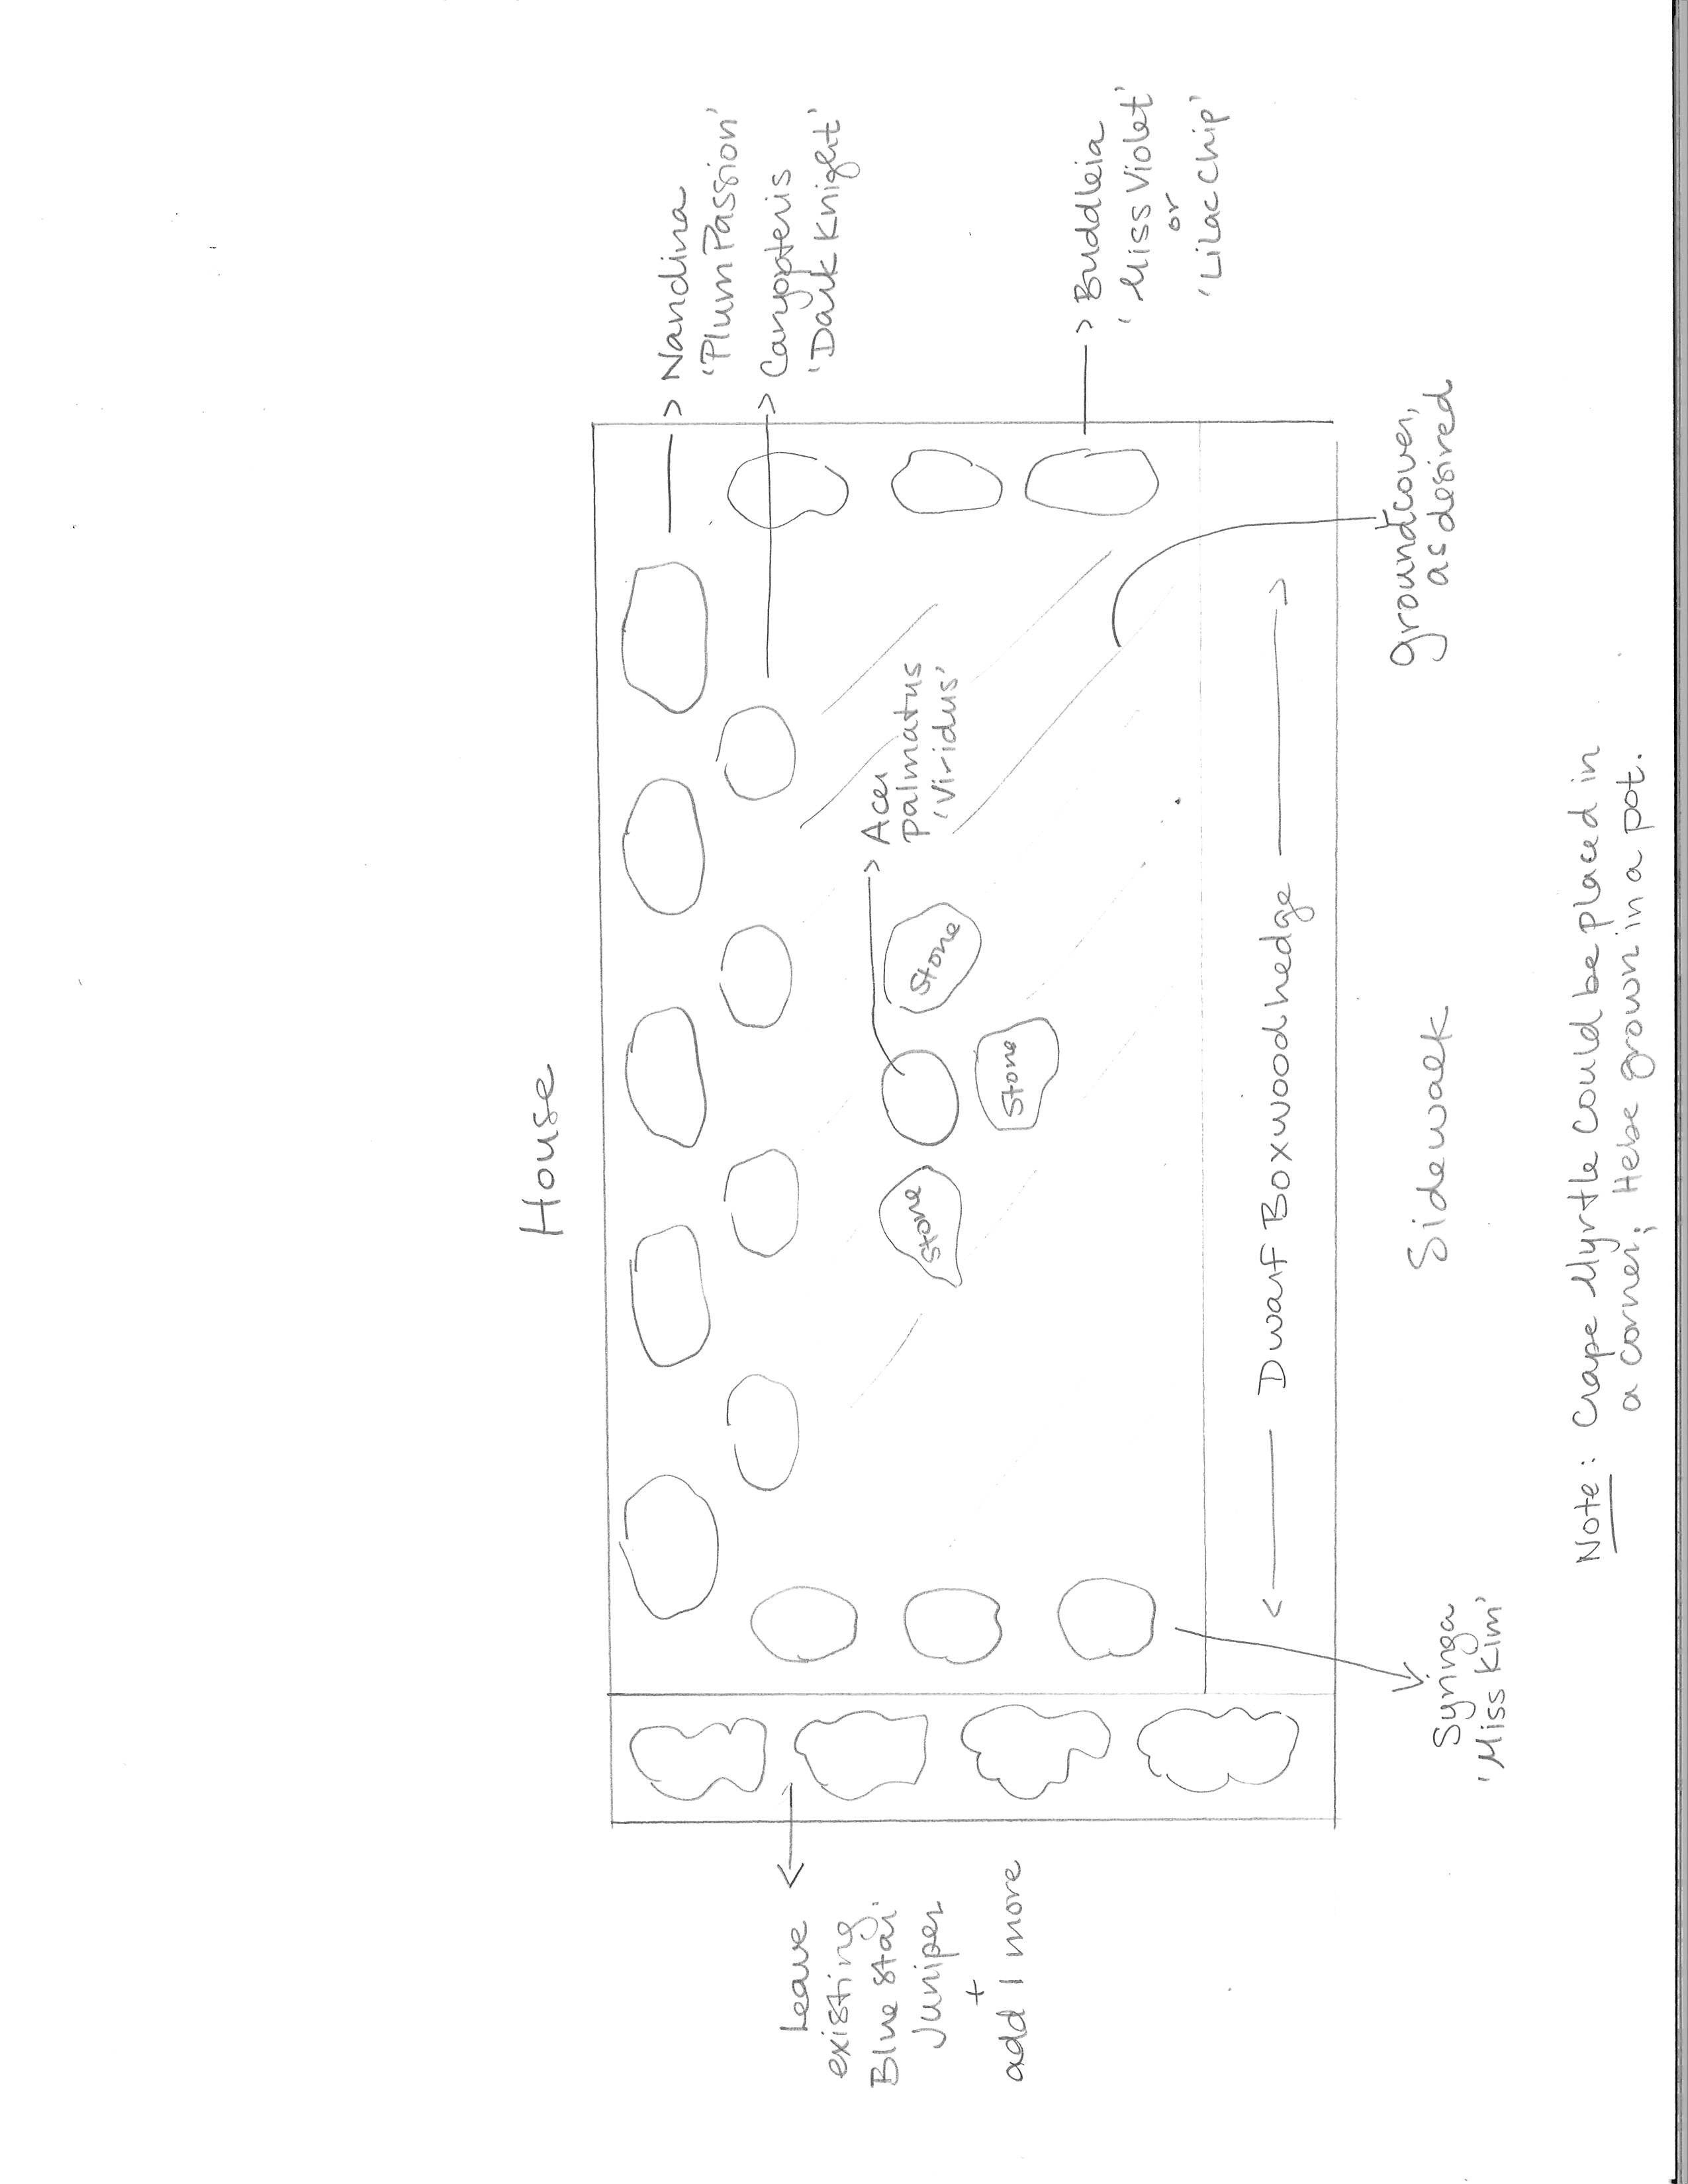 diagrams that should help let me know if you need any thing elsehere is a planting diagram for your space let us know if you have diagrams that should help let me know if you need any thing else